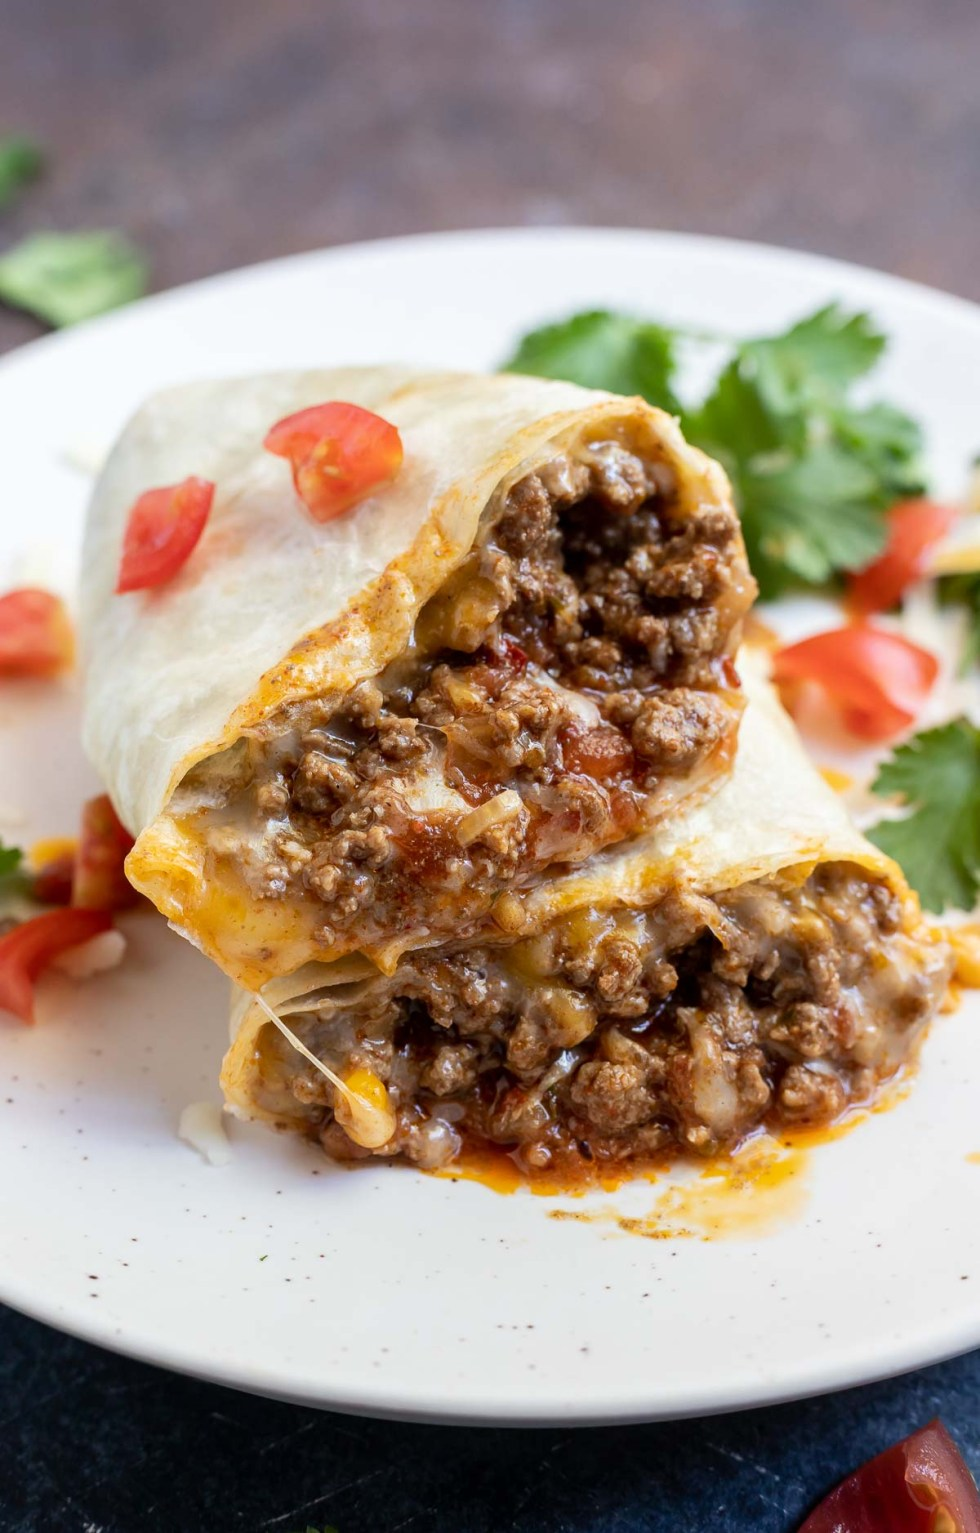 saucy ground beef and melty cheese rolled into flour tortillas